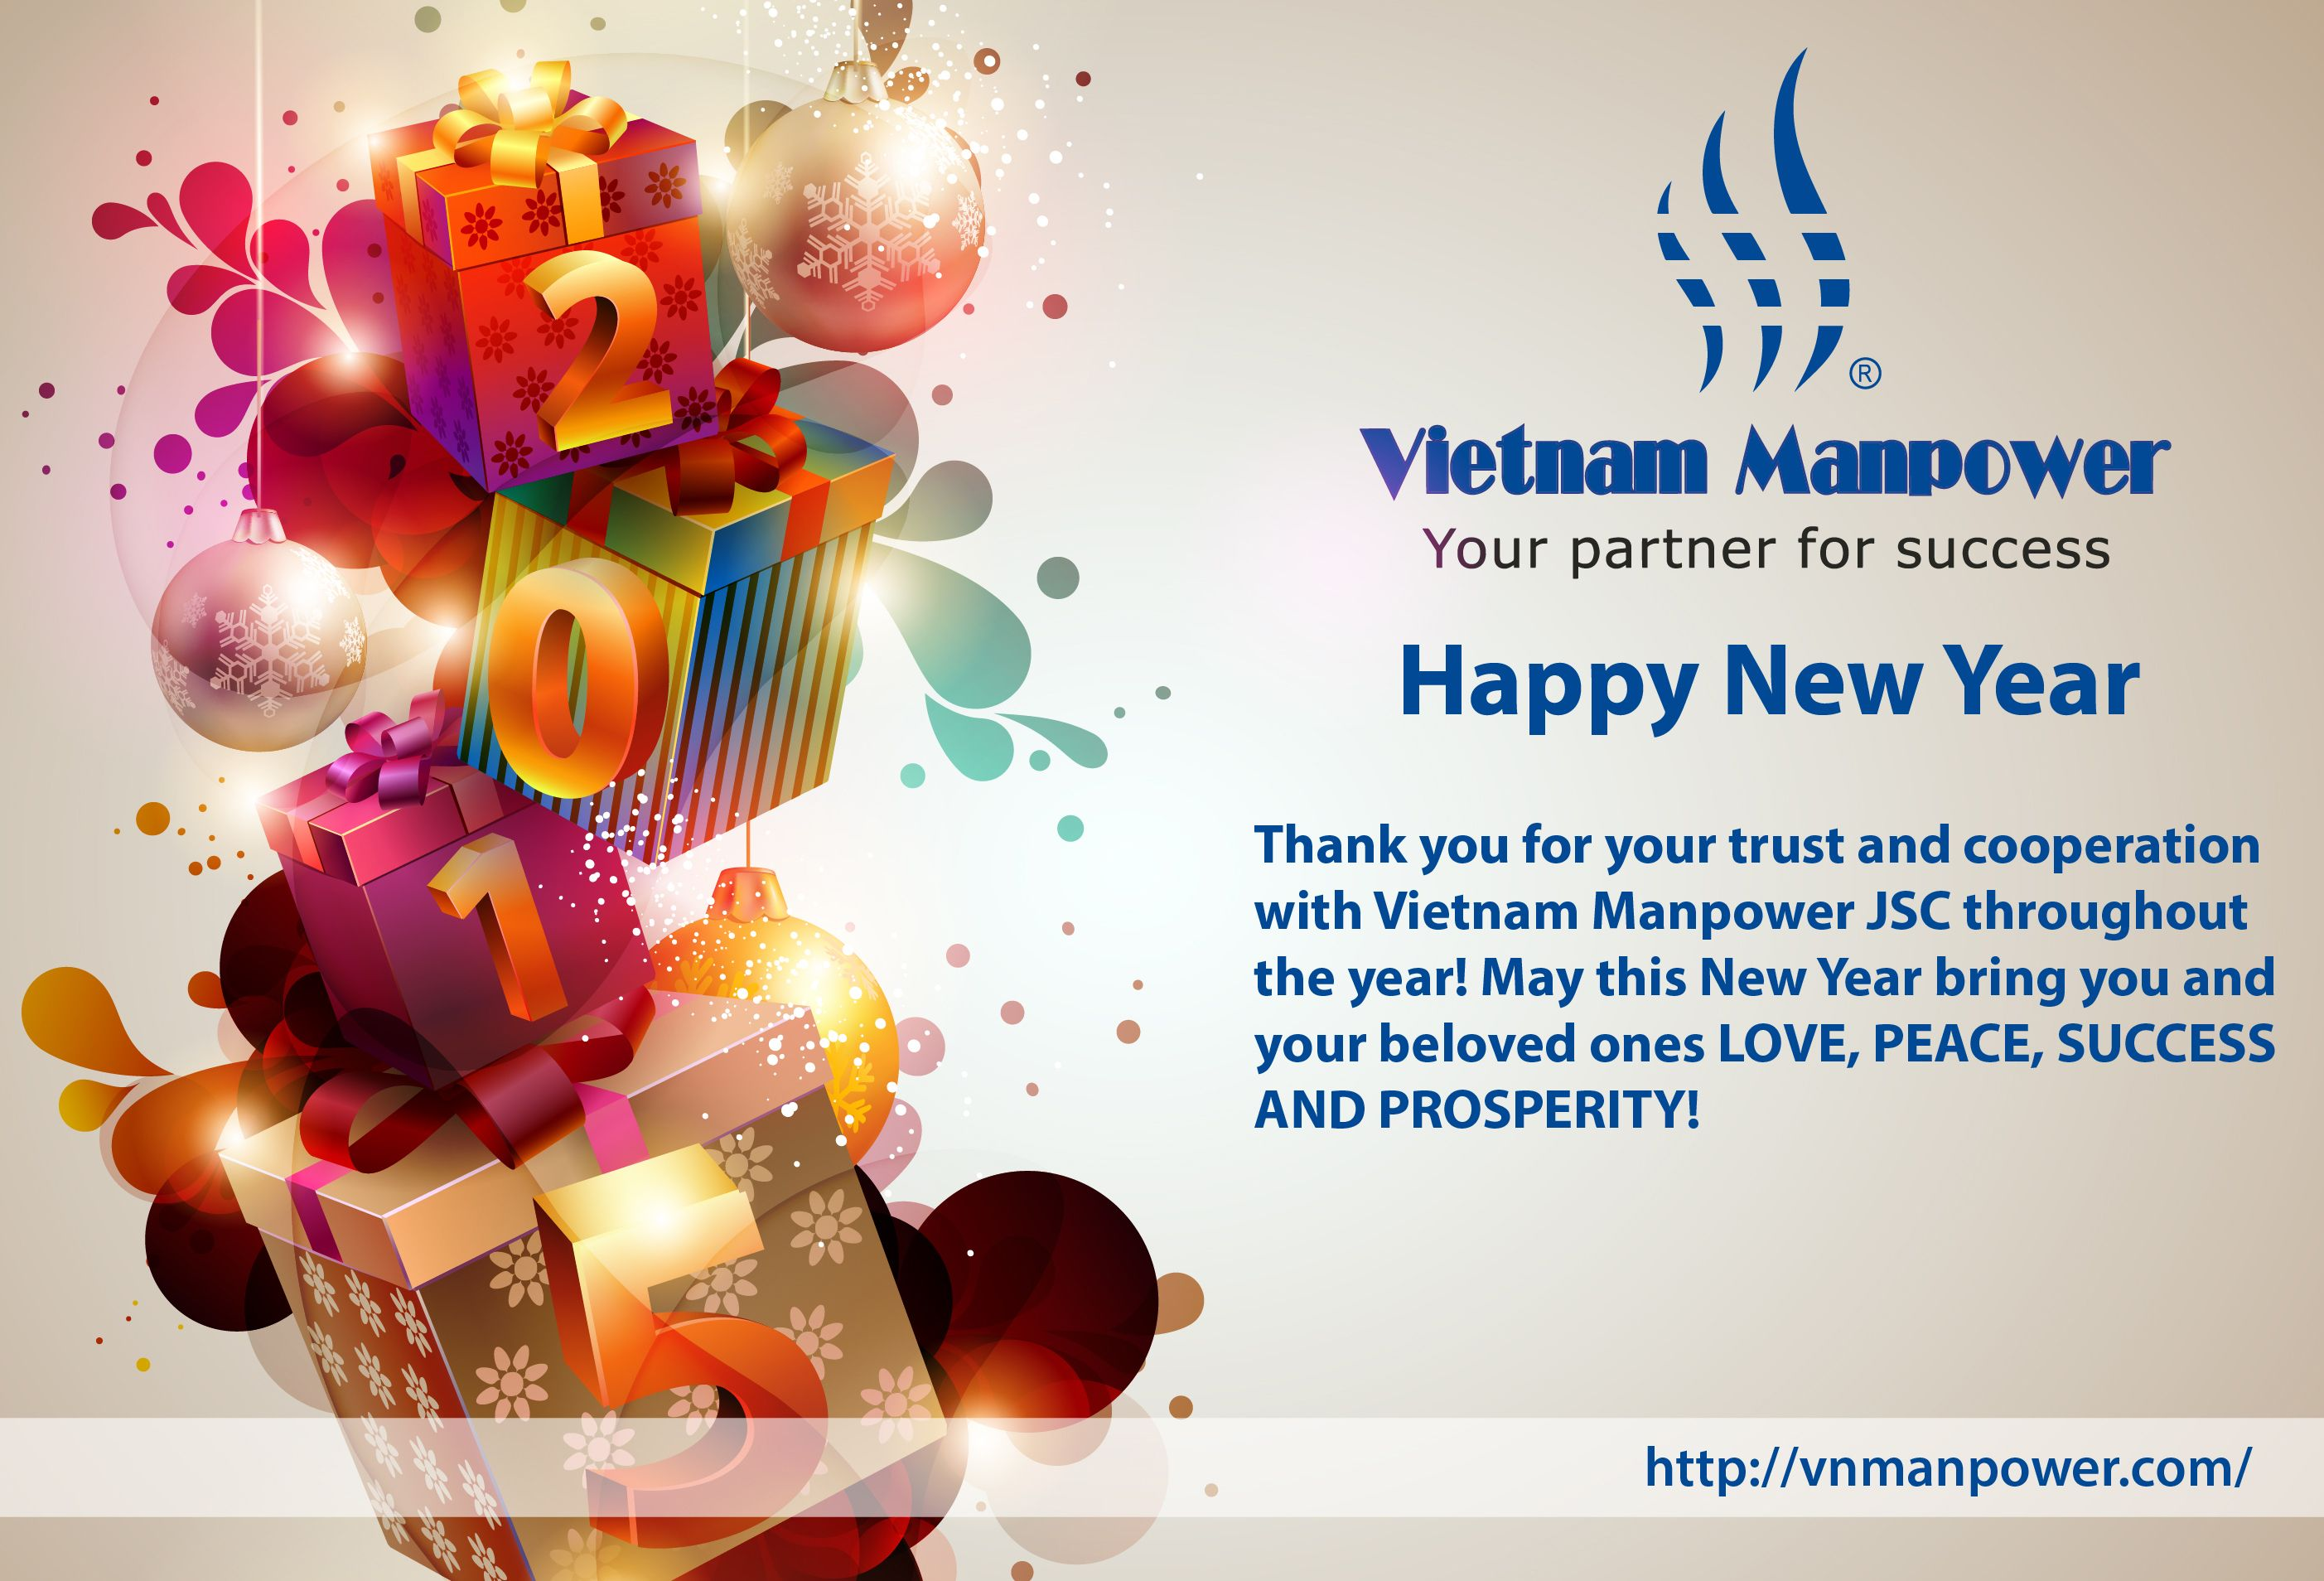 Wishing you a very happy and prosperous new year ...